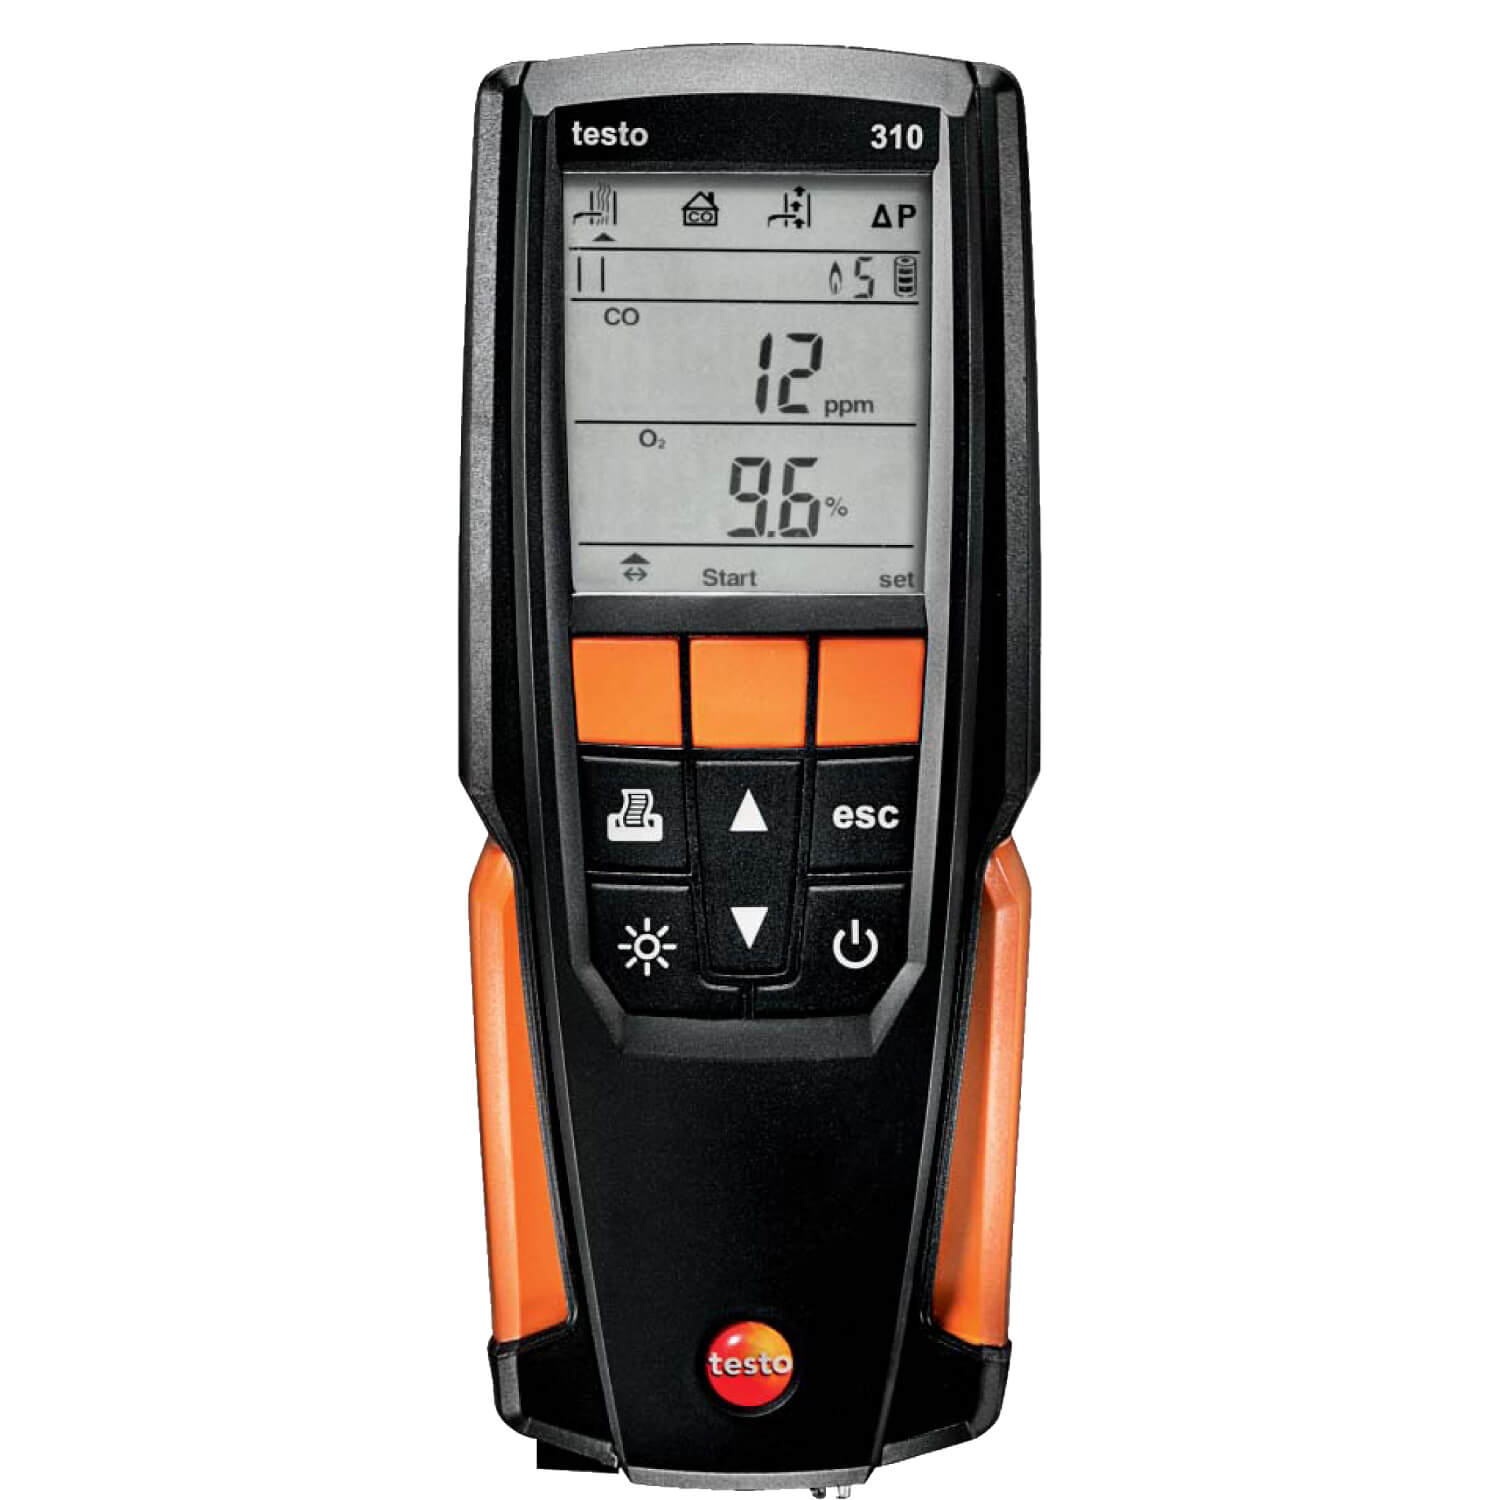 Testo 310 Combustion Analyzer for Residential Applications (Free 2nd Day Shipping)